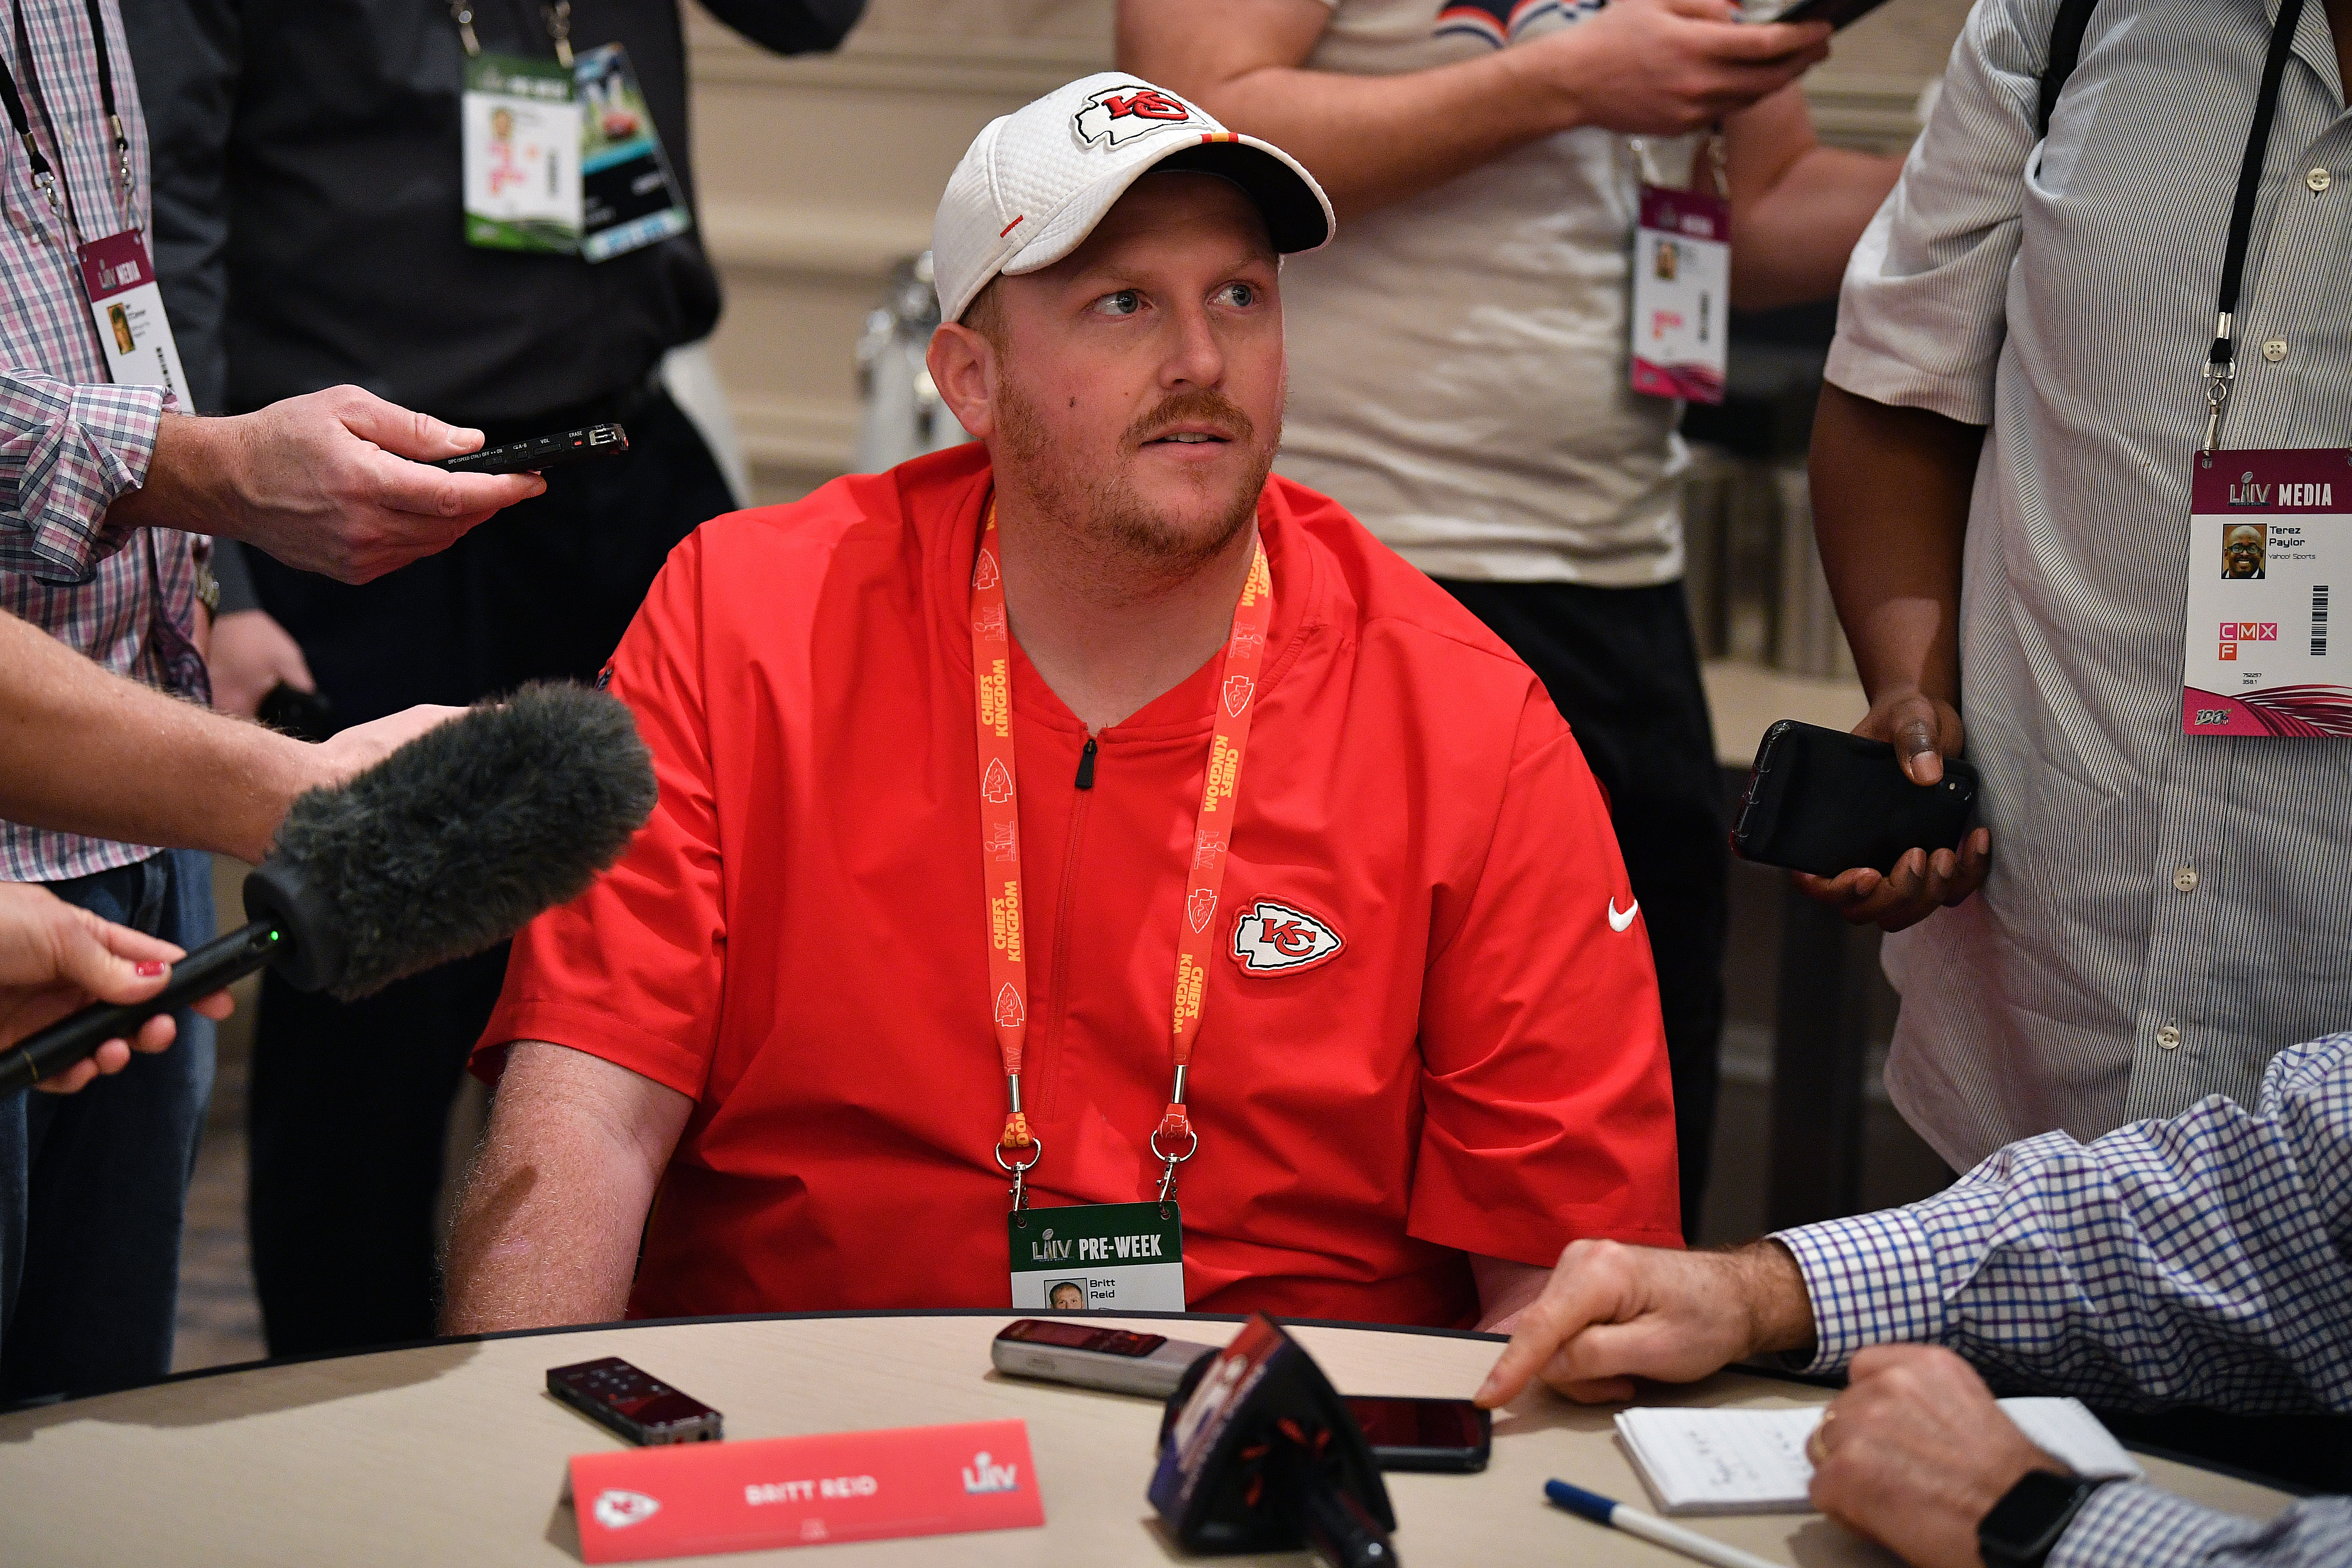 Chiefs' LB Coach Britt Reid, Son Of HC Andy Reid, Admitted To Drinking Alcohol Before Car Crash That Left Child With Life-Threatening Injuries